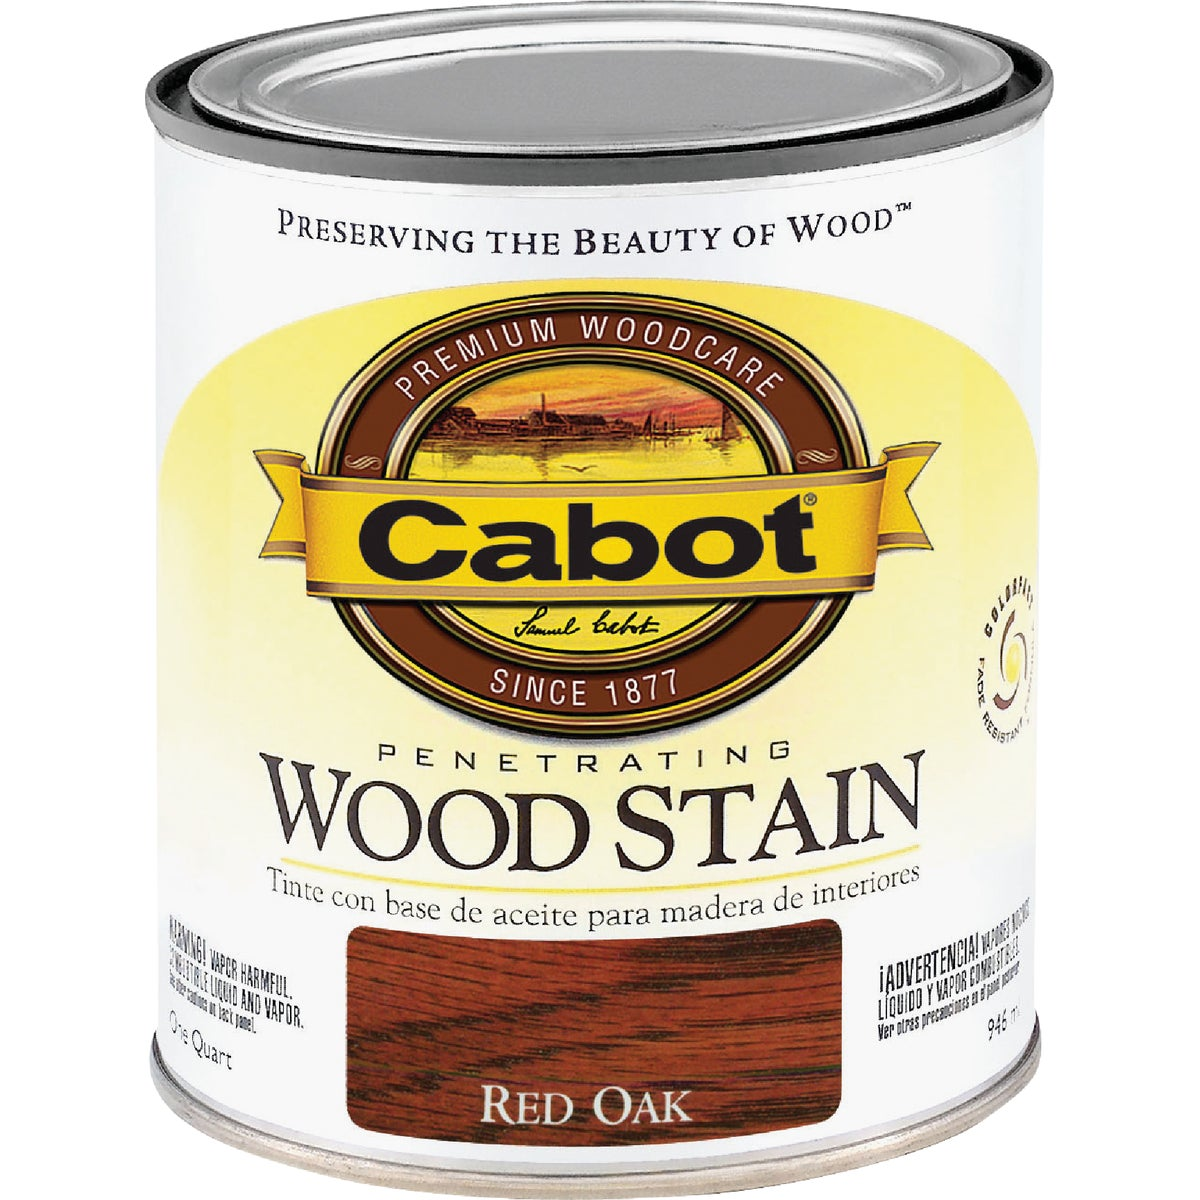 INT RED OAK WOOD STAIN - 144.0008129.005 by Valspar Corp